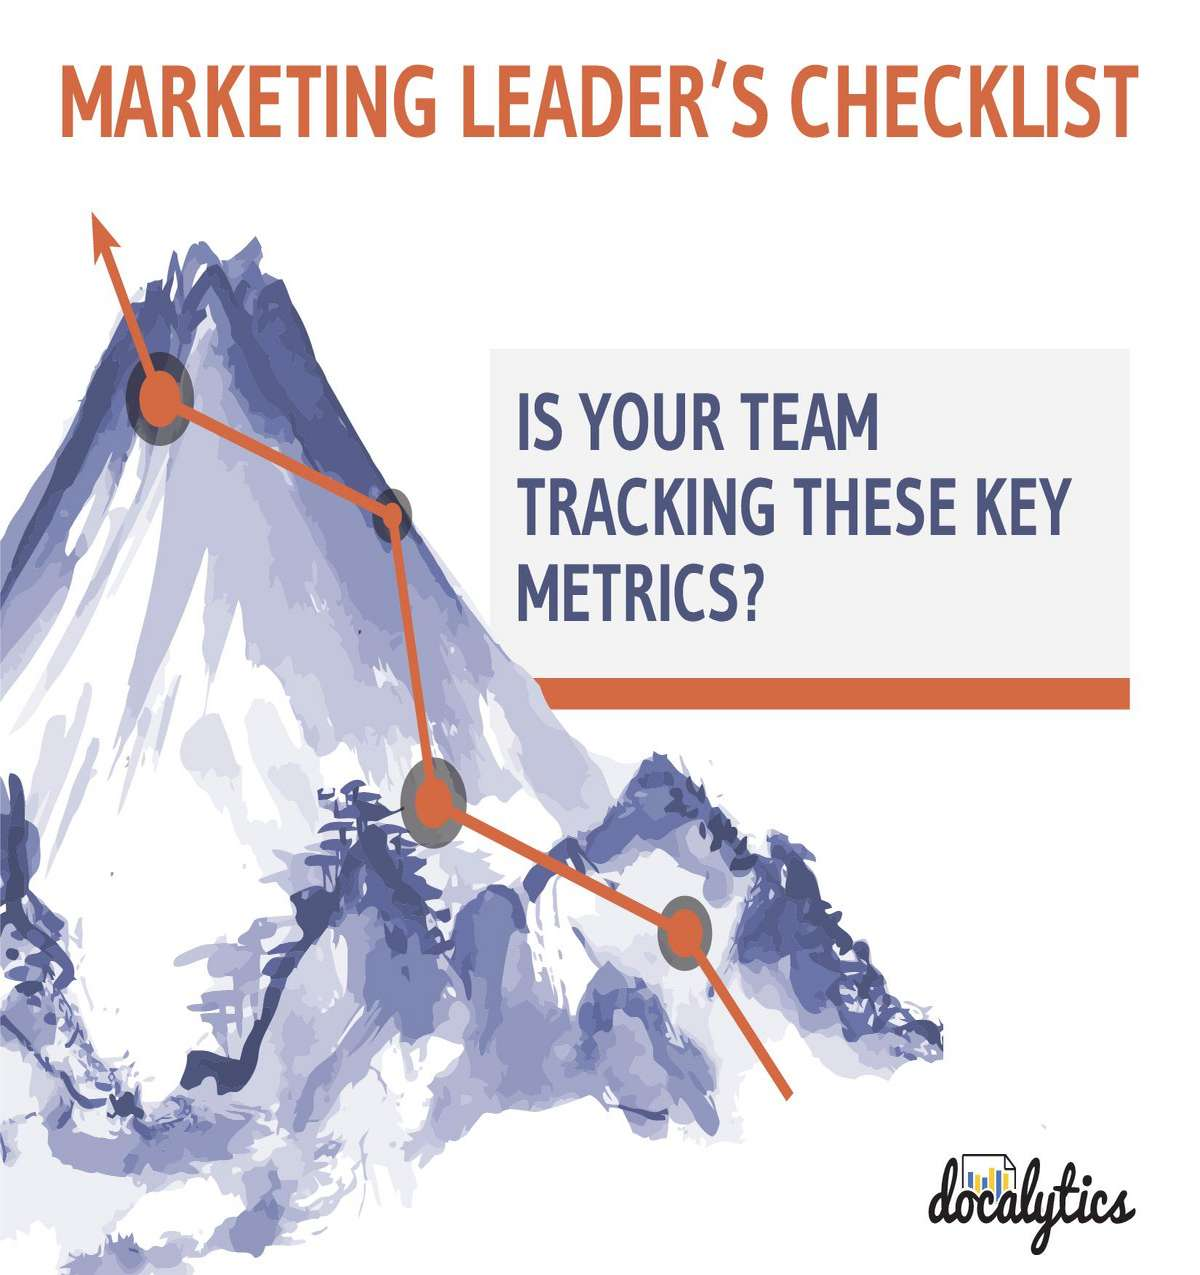 Marketing Leader's Checklist: Is Your Team Tracking These Key Metrics?